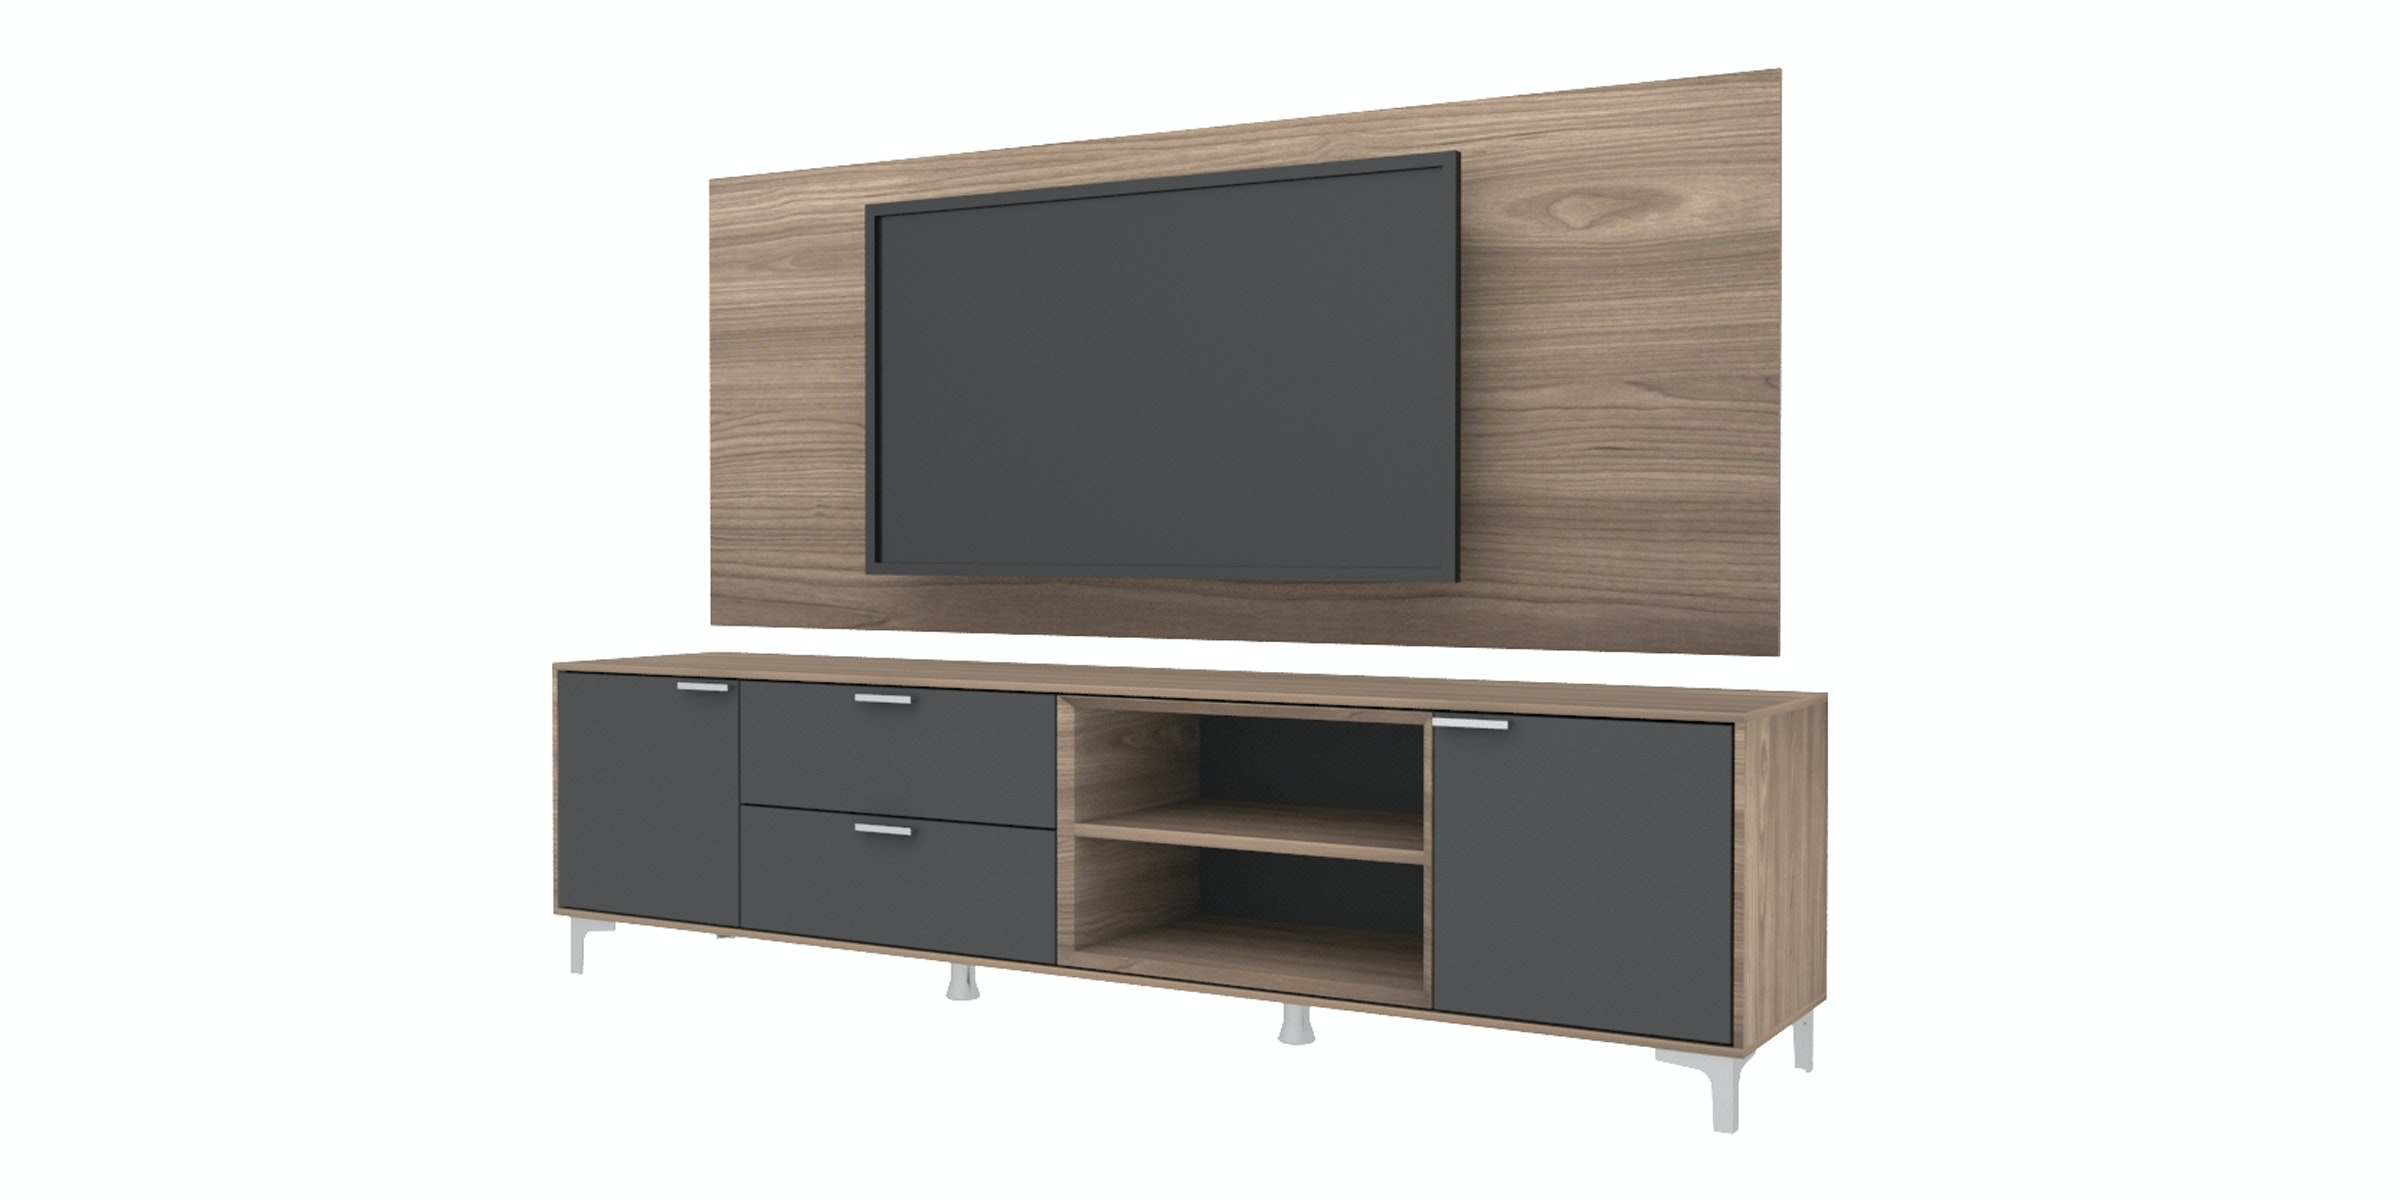 Case Furniture TV Cabinet with Wall Panel PCI006-04-WP Mocha Maple - Dark Grey